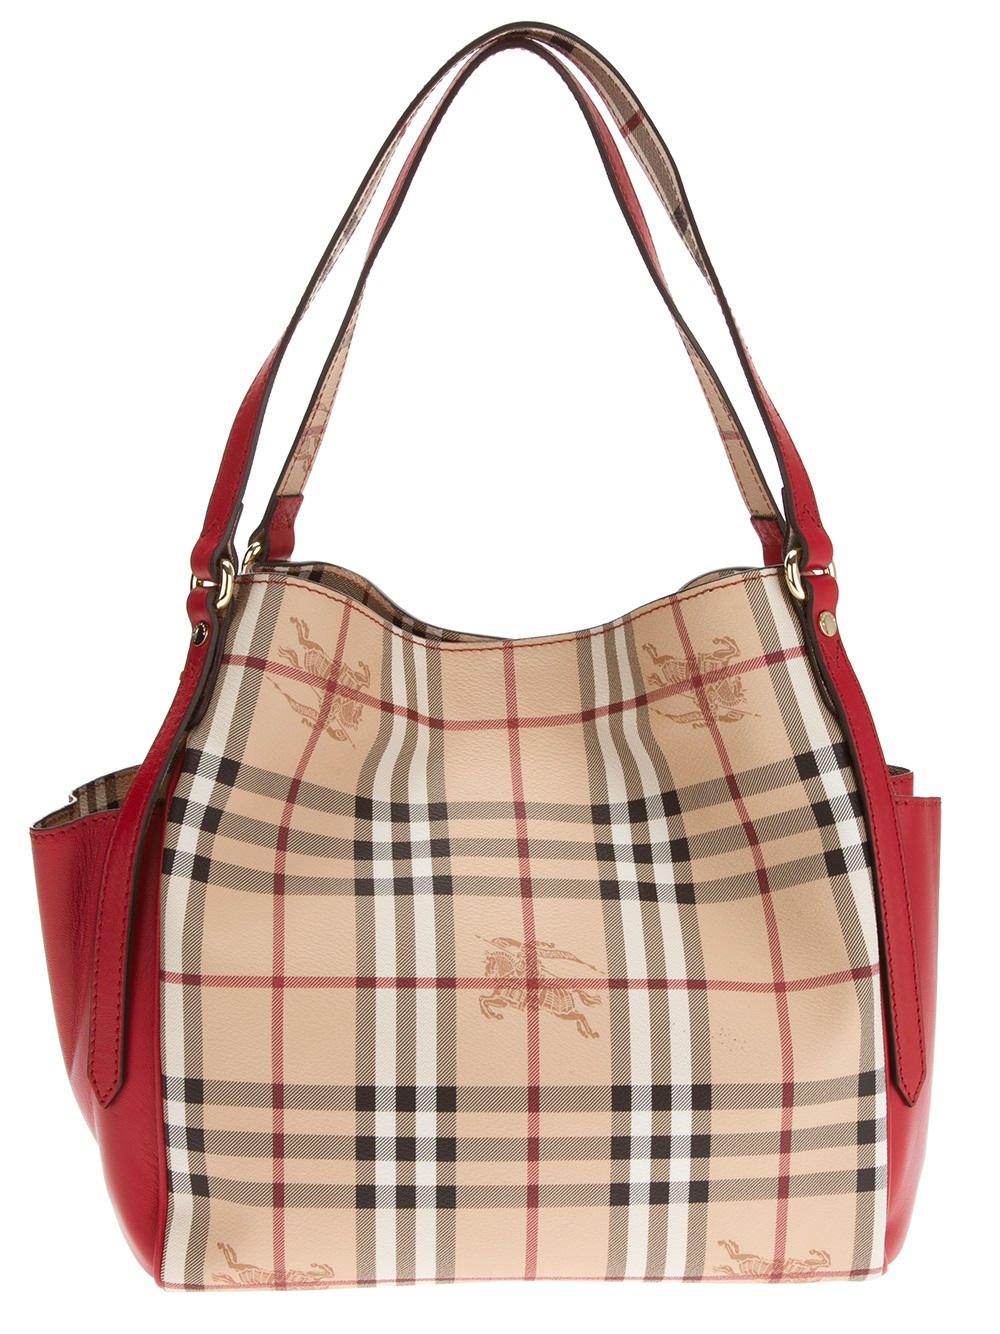 Lyst - Burberry Burberry London Small Canterbury Tote in Red 251b5271db72d